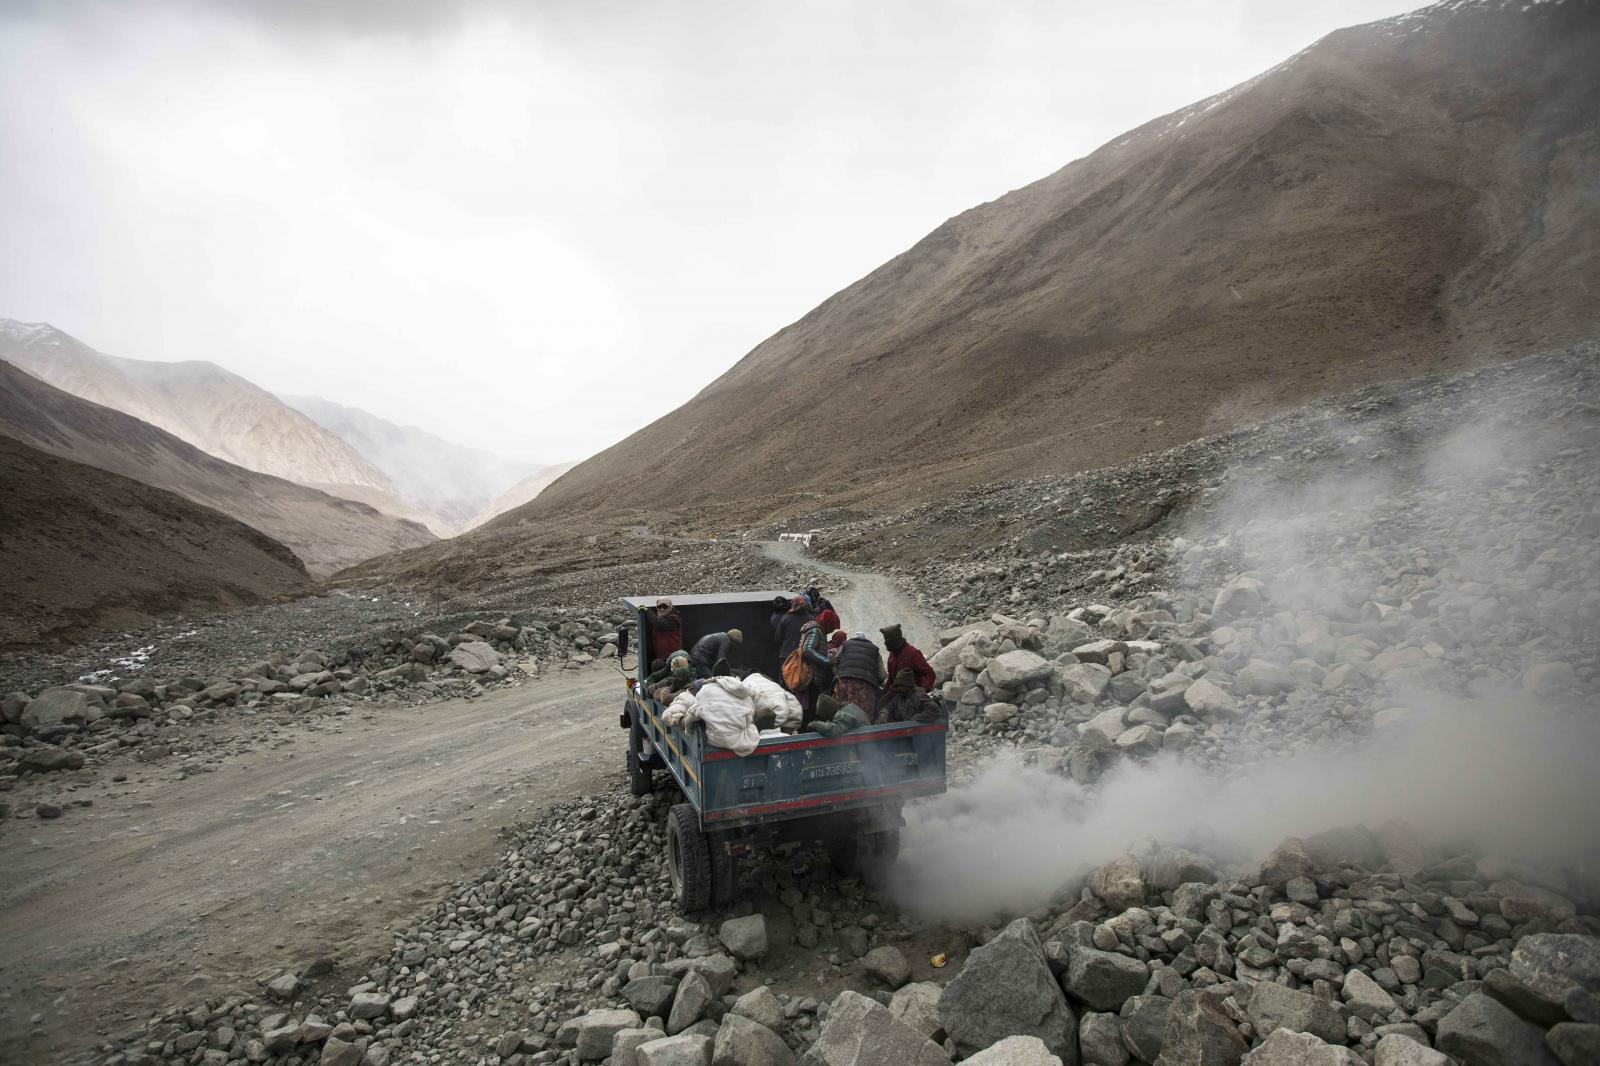 Road maintenance workers from Jharkhand state and Ladakh head back to their respective campsite and homes after a day's work along Pangong Lake road near the Chang La pass in northern India's Ladakh region.